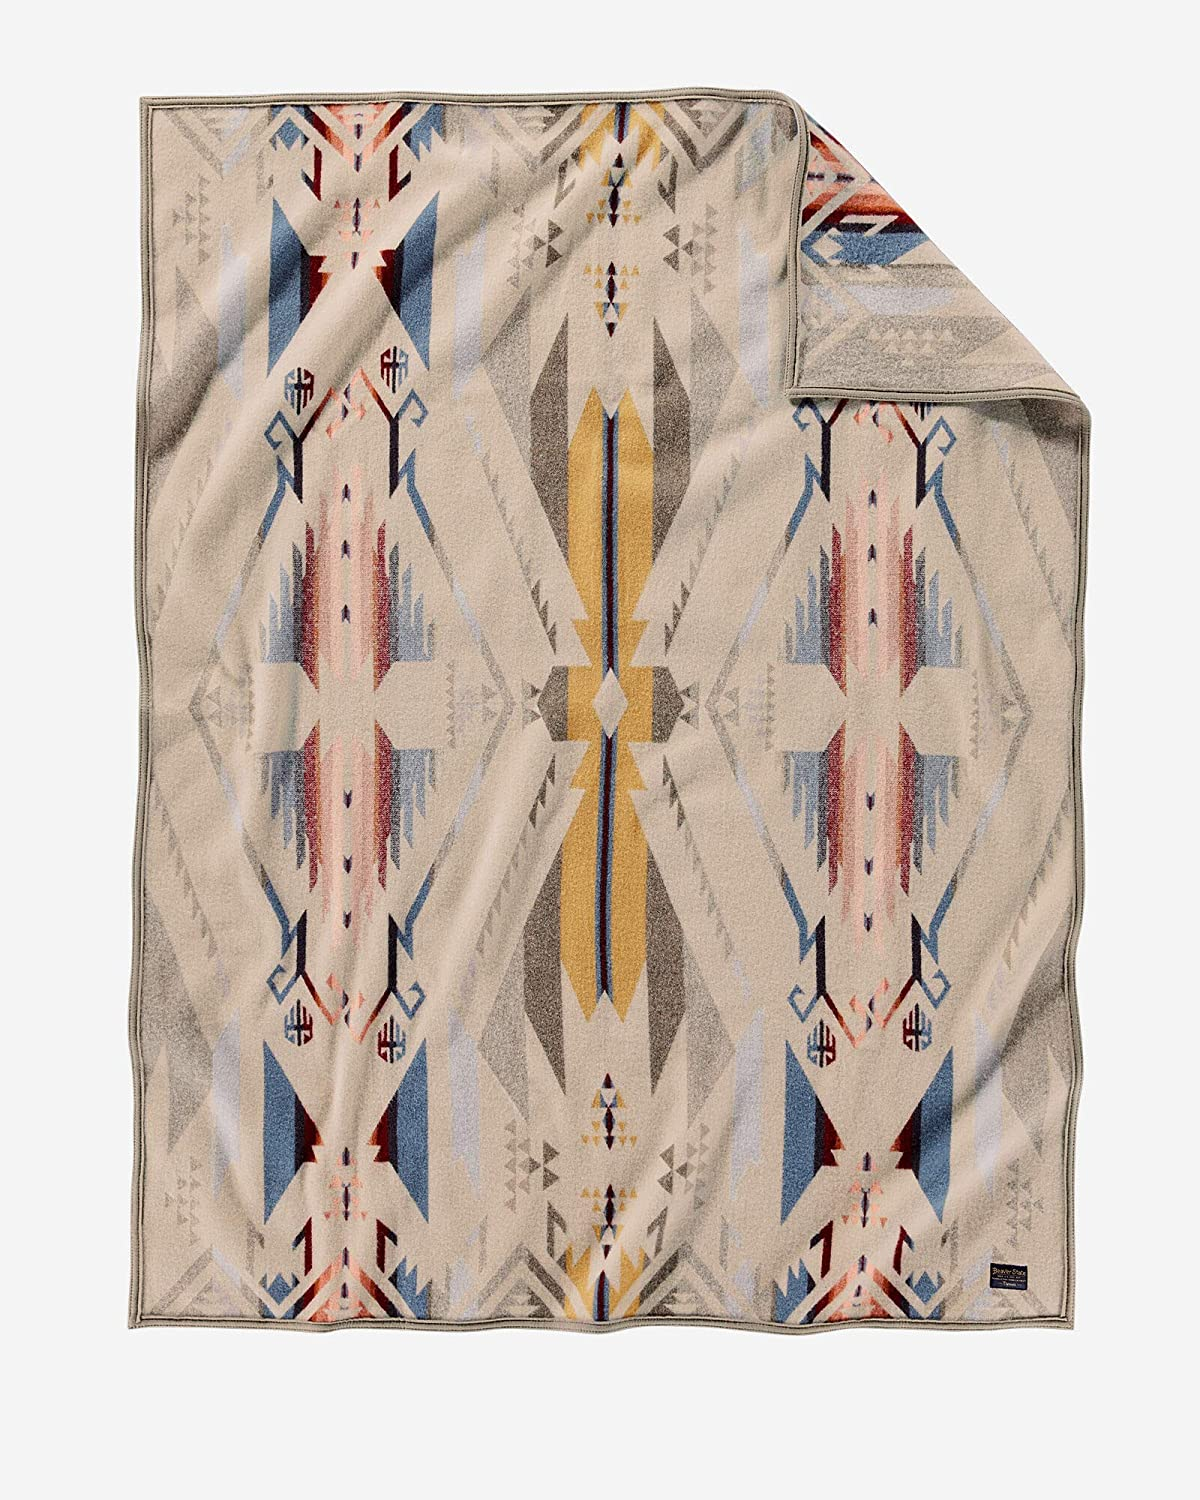 Pendleton Max 56% OFF 4 years warranty Jacquard Throw White One Sands Size